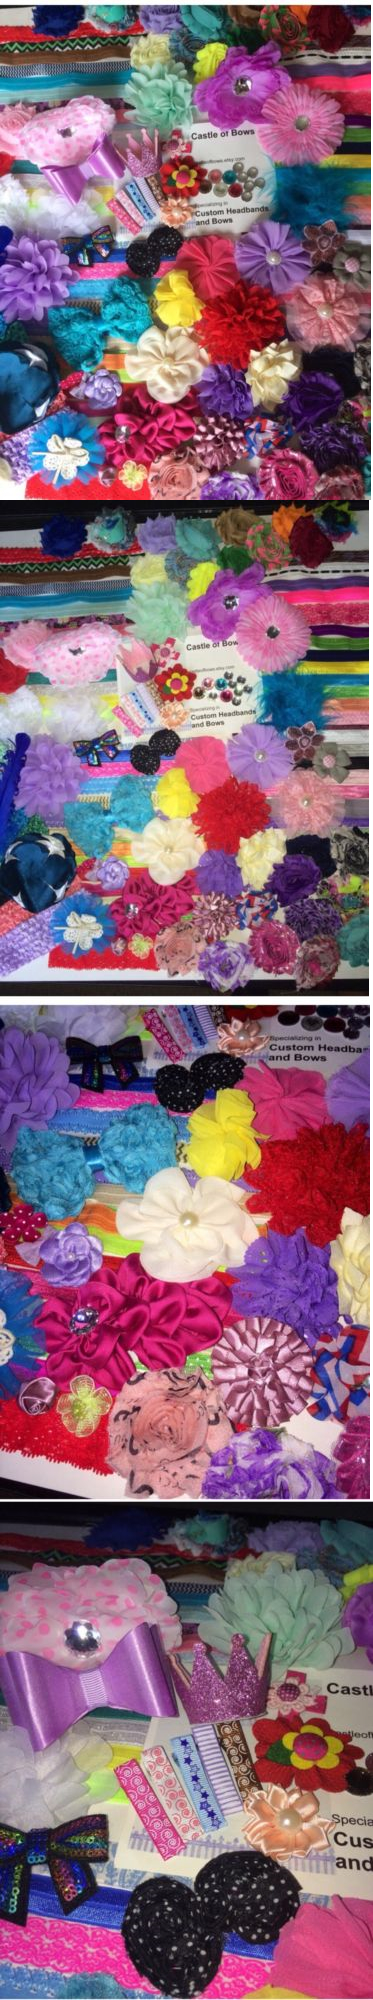 Hair Accessories 18786: Baby Shower Headband Kit - Jumbo Diy Hair-Bow And Headband Kit- Makes 45 Headbands -> BUY IT NOW ONLY: $45 on eBay!